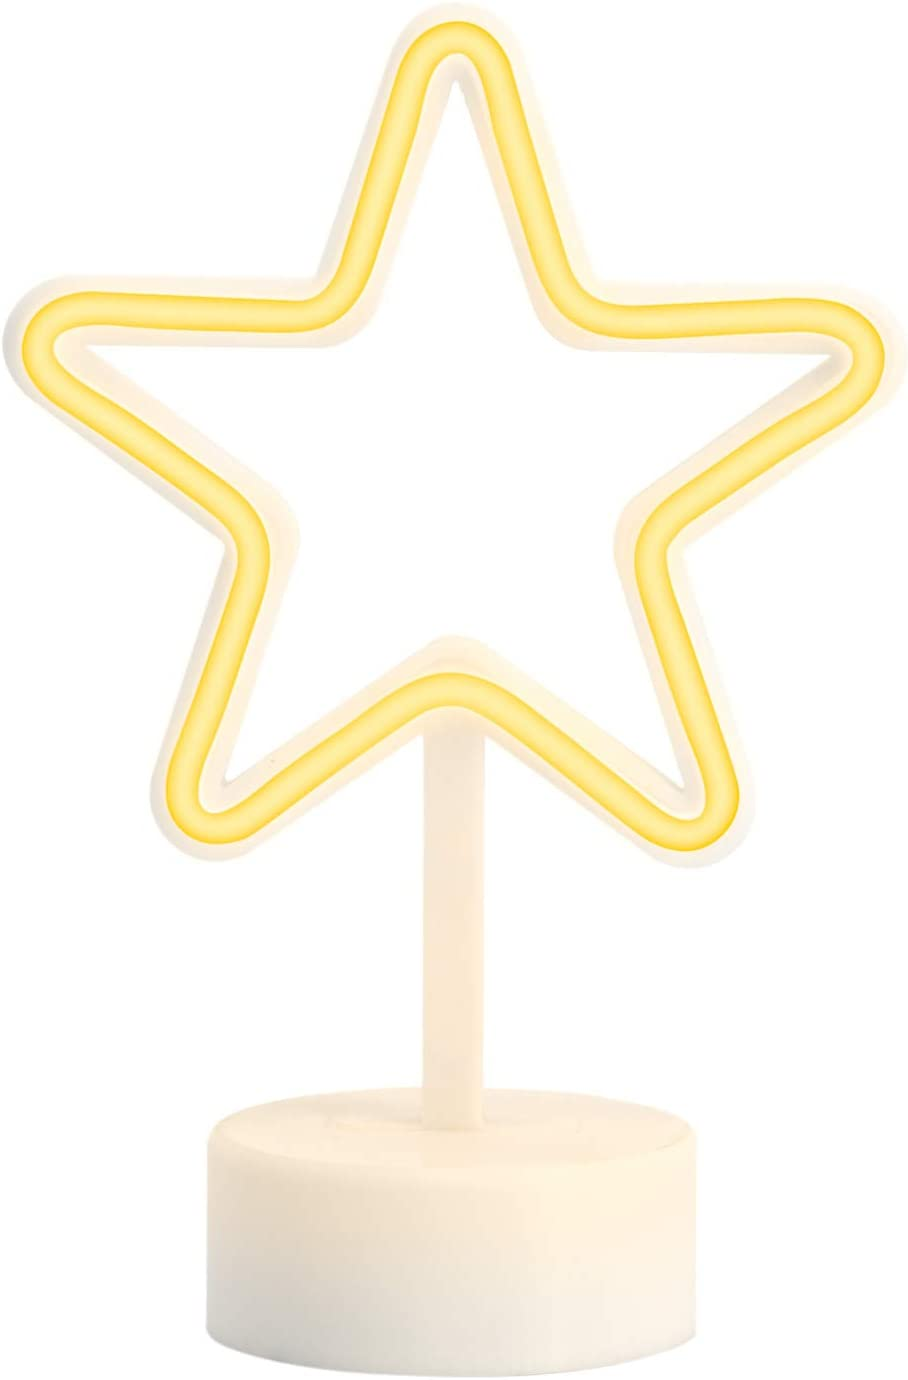 Amped & Co, Star Desk Light, Mini LED Neon Collection, Night Lite Novelty Room Decor, Battery Powered, 7.5 inches, Yellow